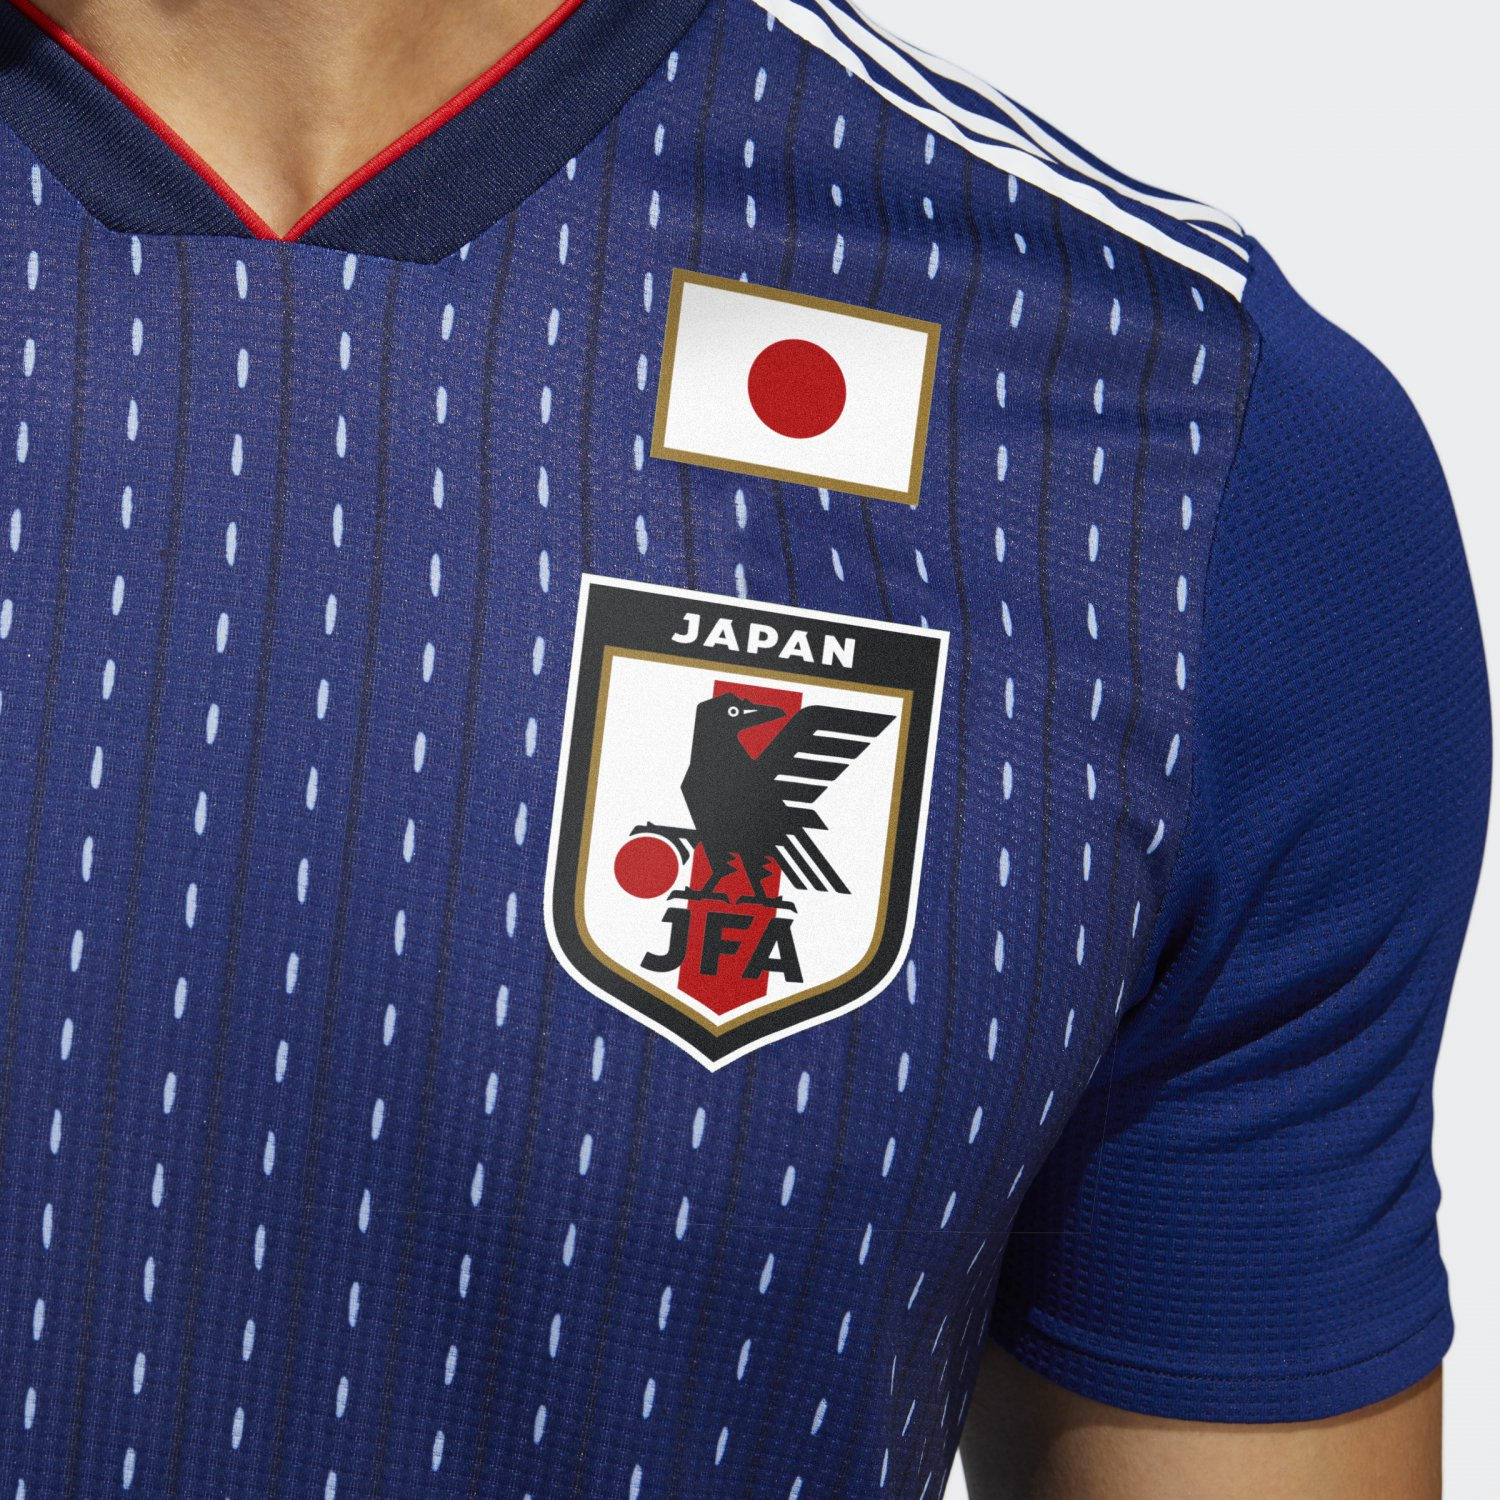 premium selection b9de5 0b410 Call off the search - Japan's new retro away kit is the ...